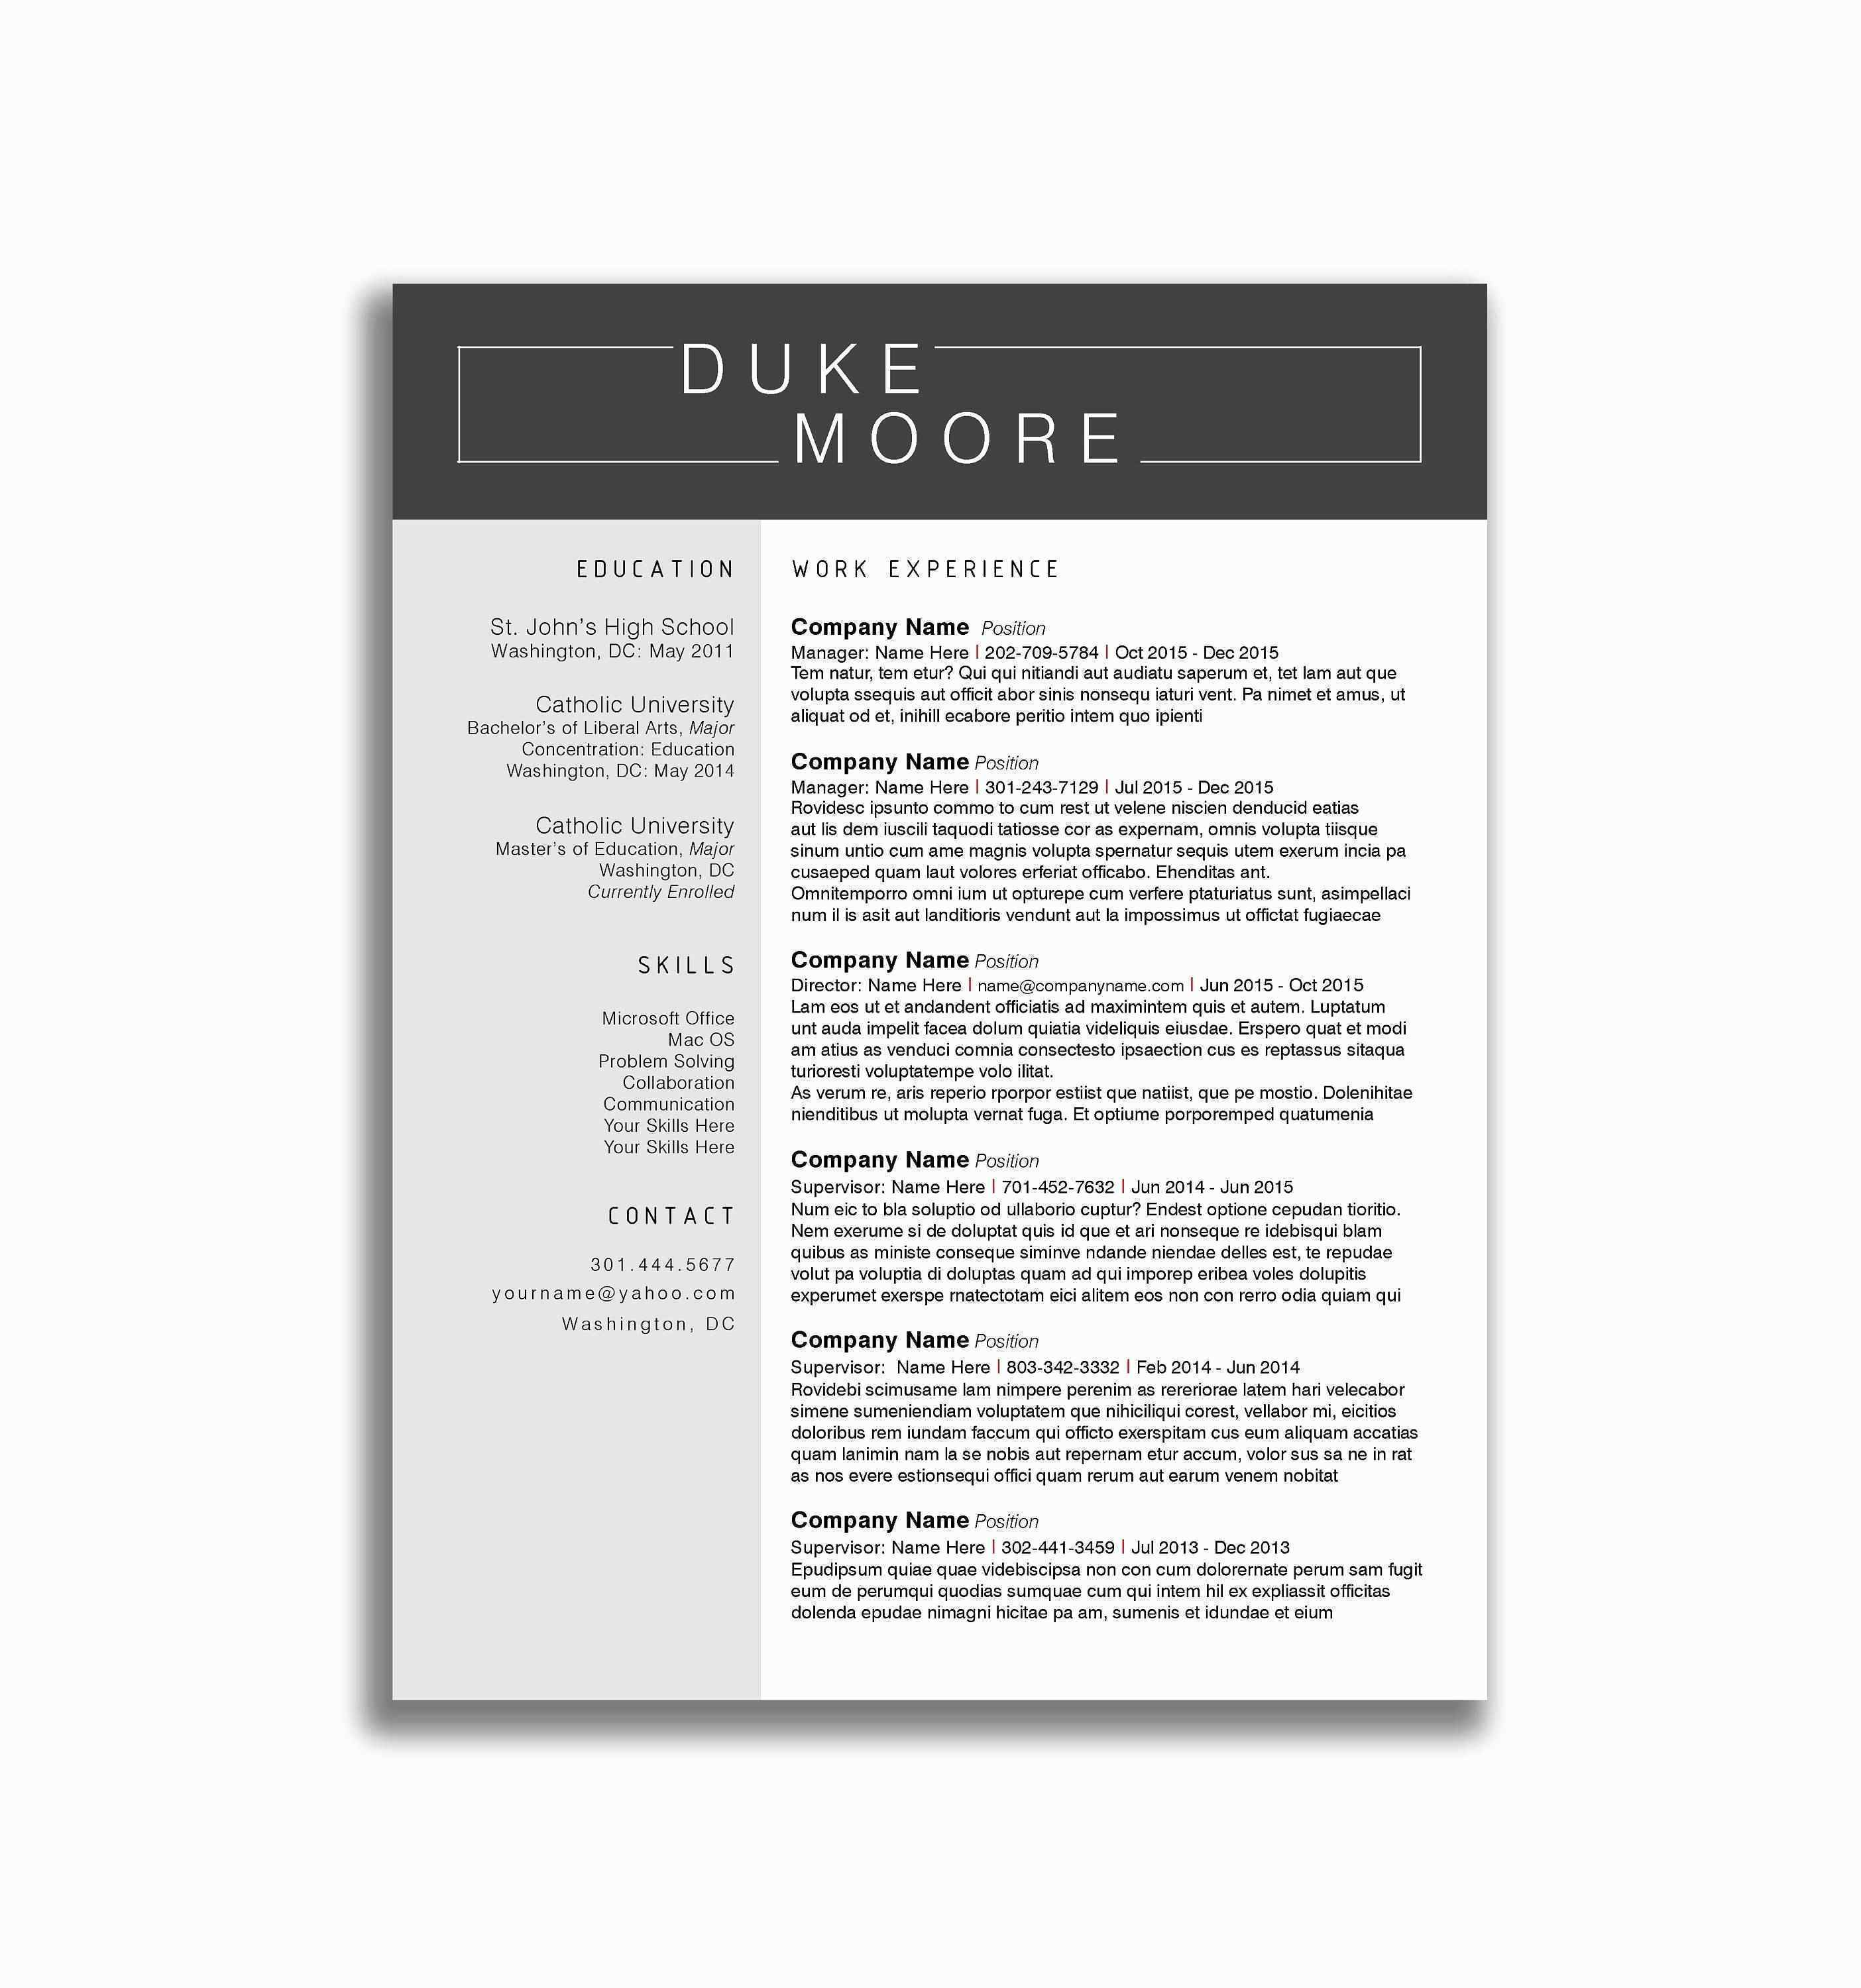 React Js Resumes - Node Template Engine New 47 Plete Node Js Resume Ed I – Resume